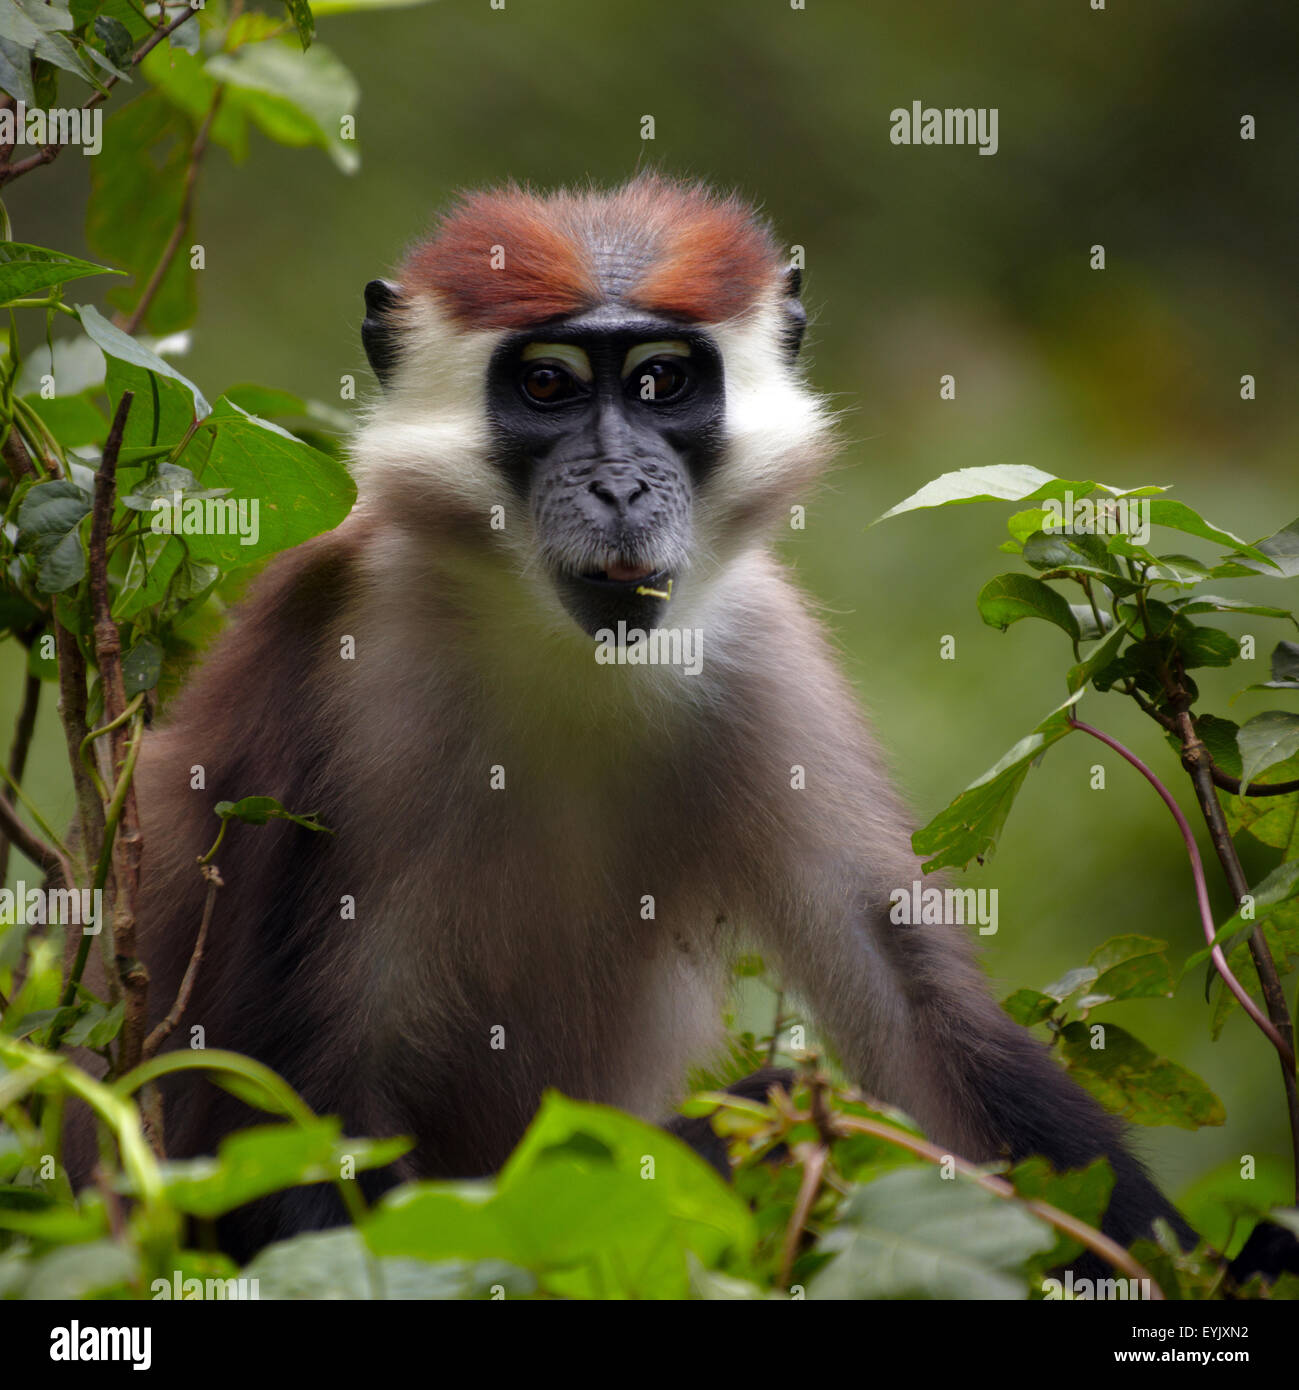 monkey images stockfotos monkey images bilder alamy. Black Bedroom Furniture Sets. Home Design Ideas